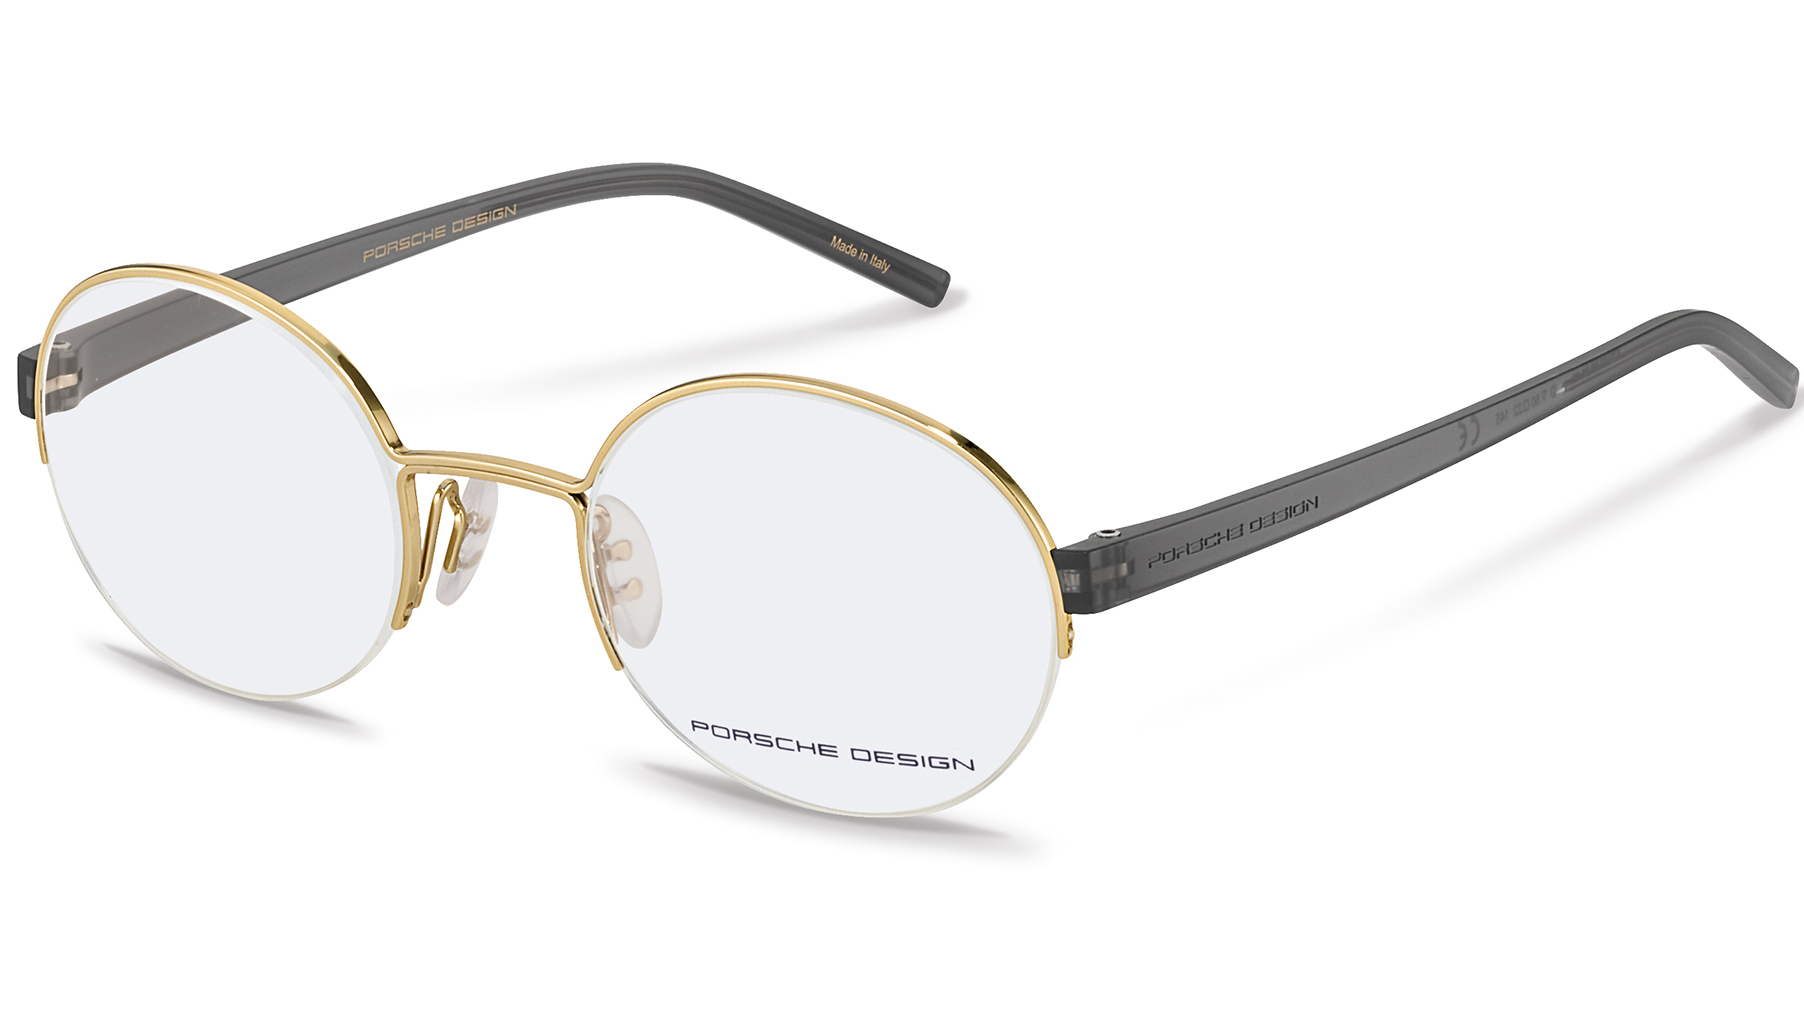 1675b387d961 Eyewear icons in technological perfection. Stuttgart Munich. The eyewear  models of Porsche Design ...